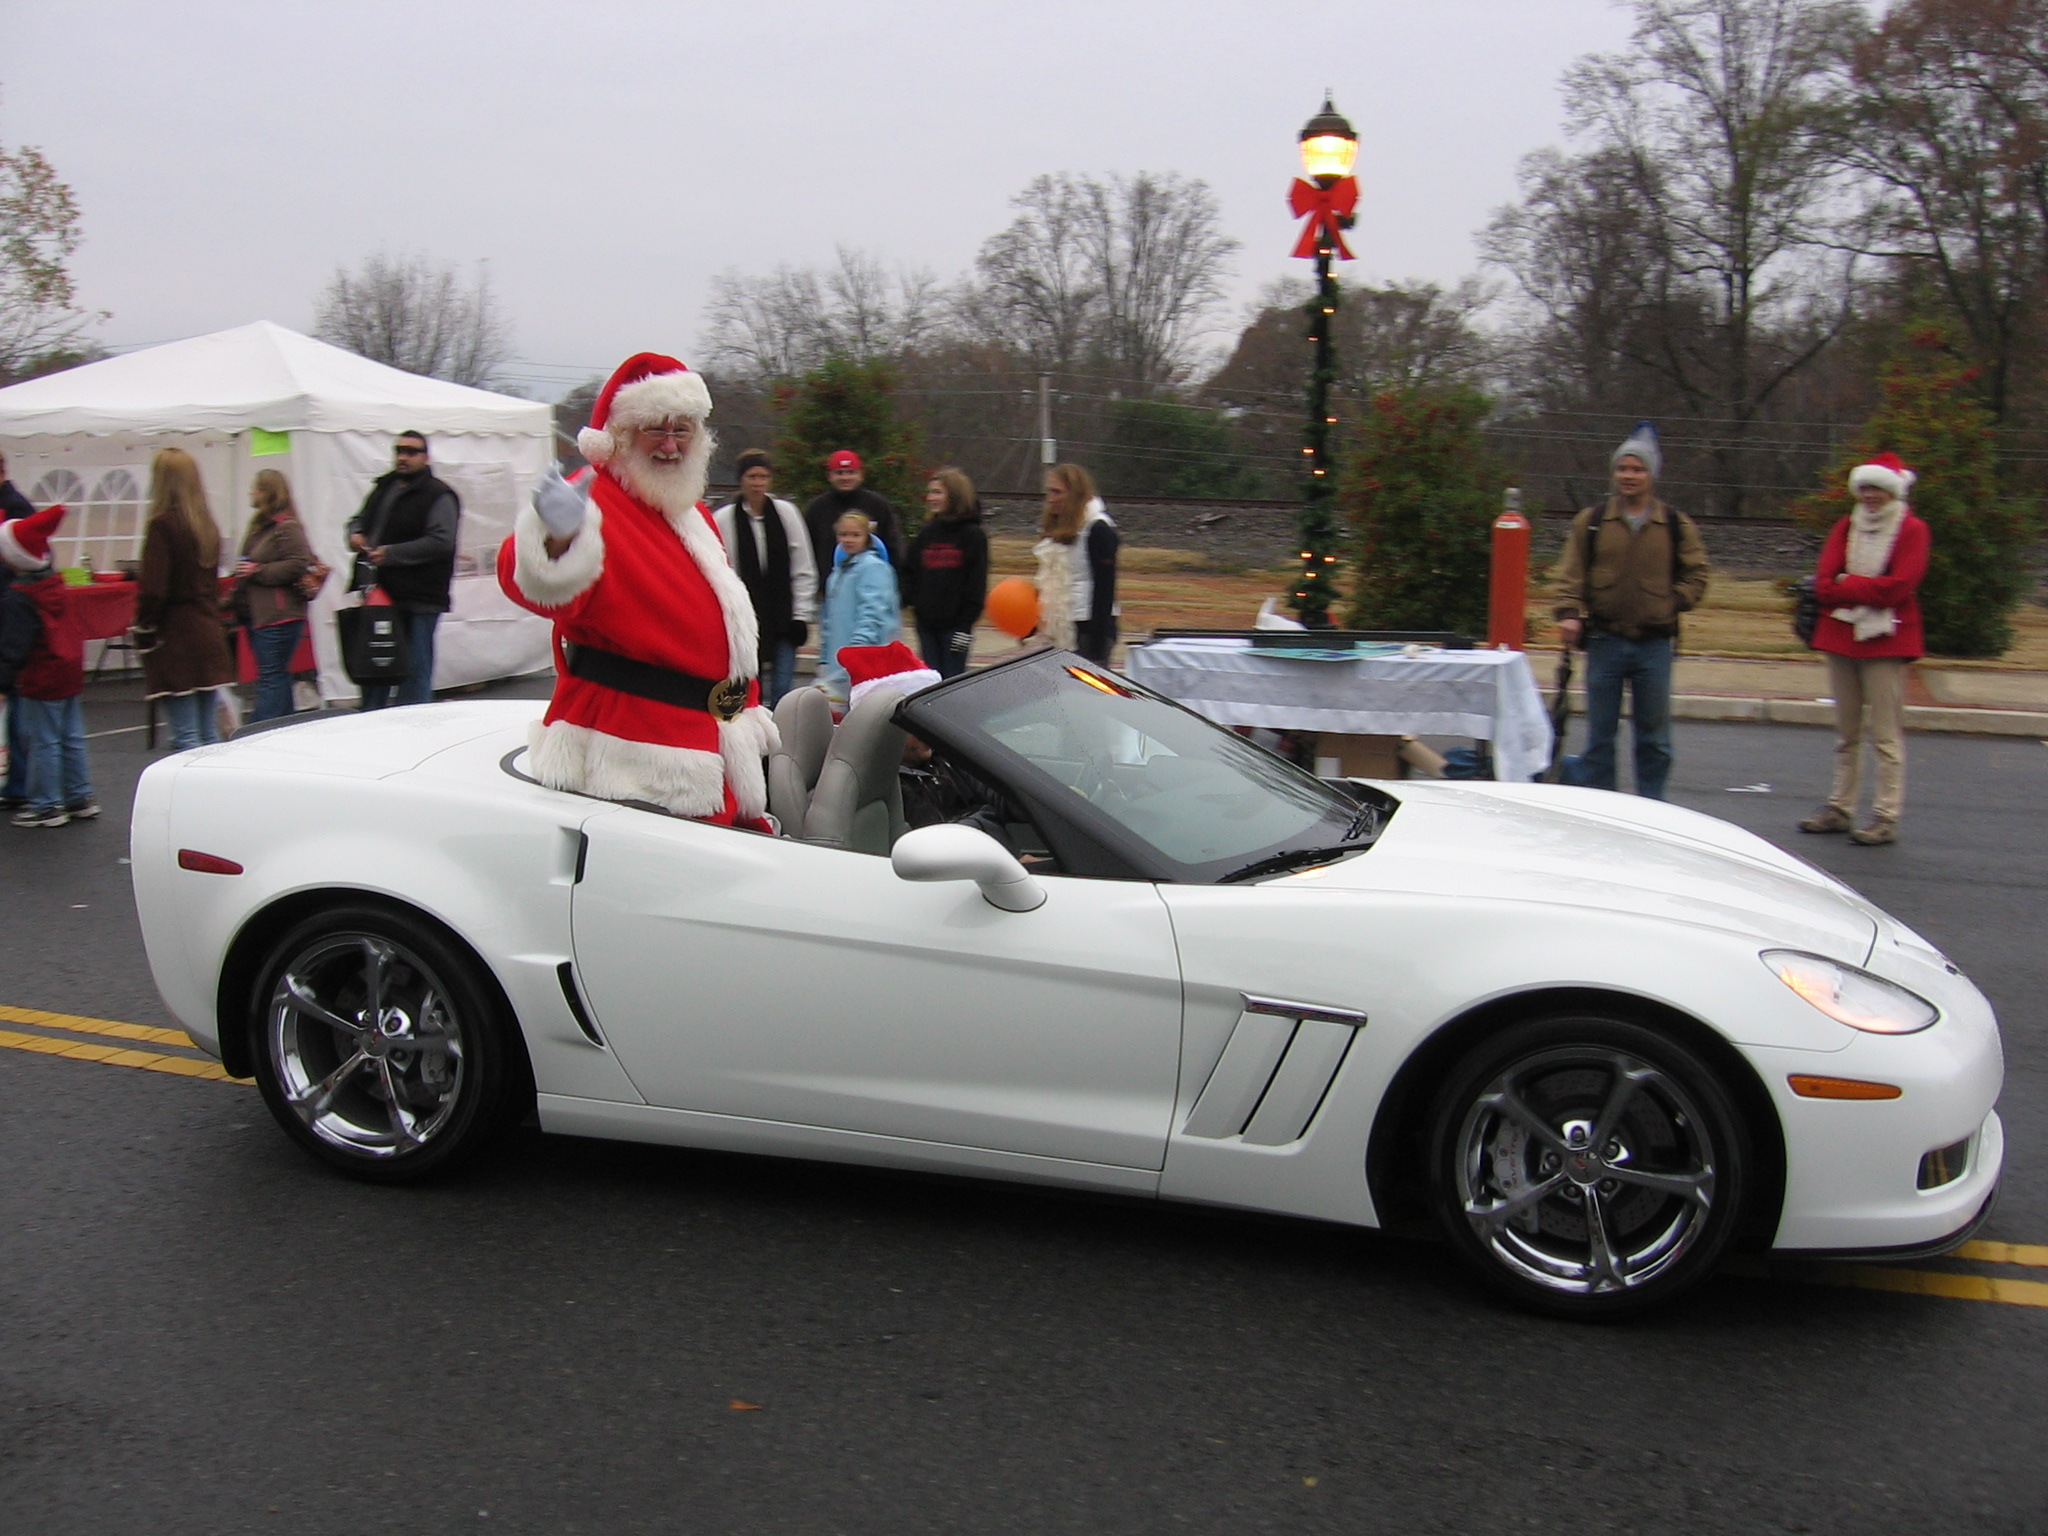 Buford Holiday Festival and Parade